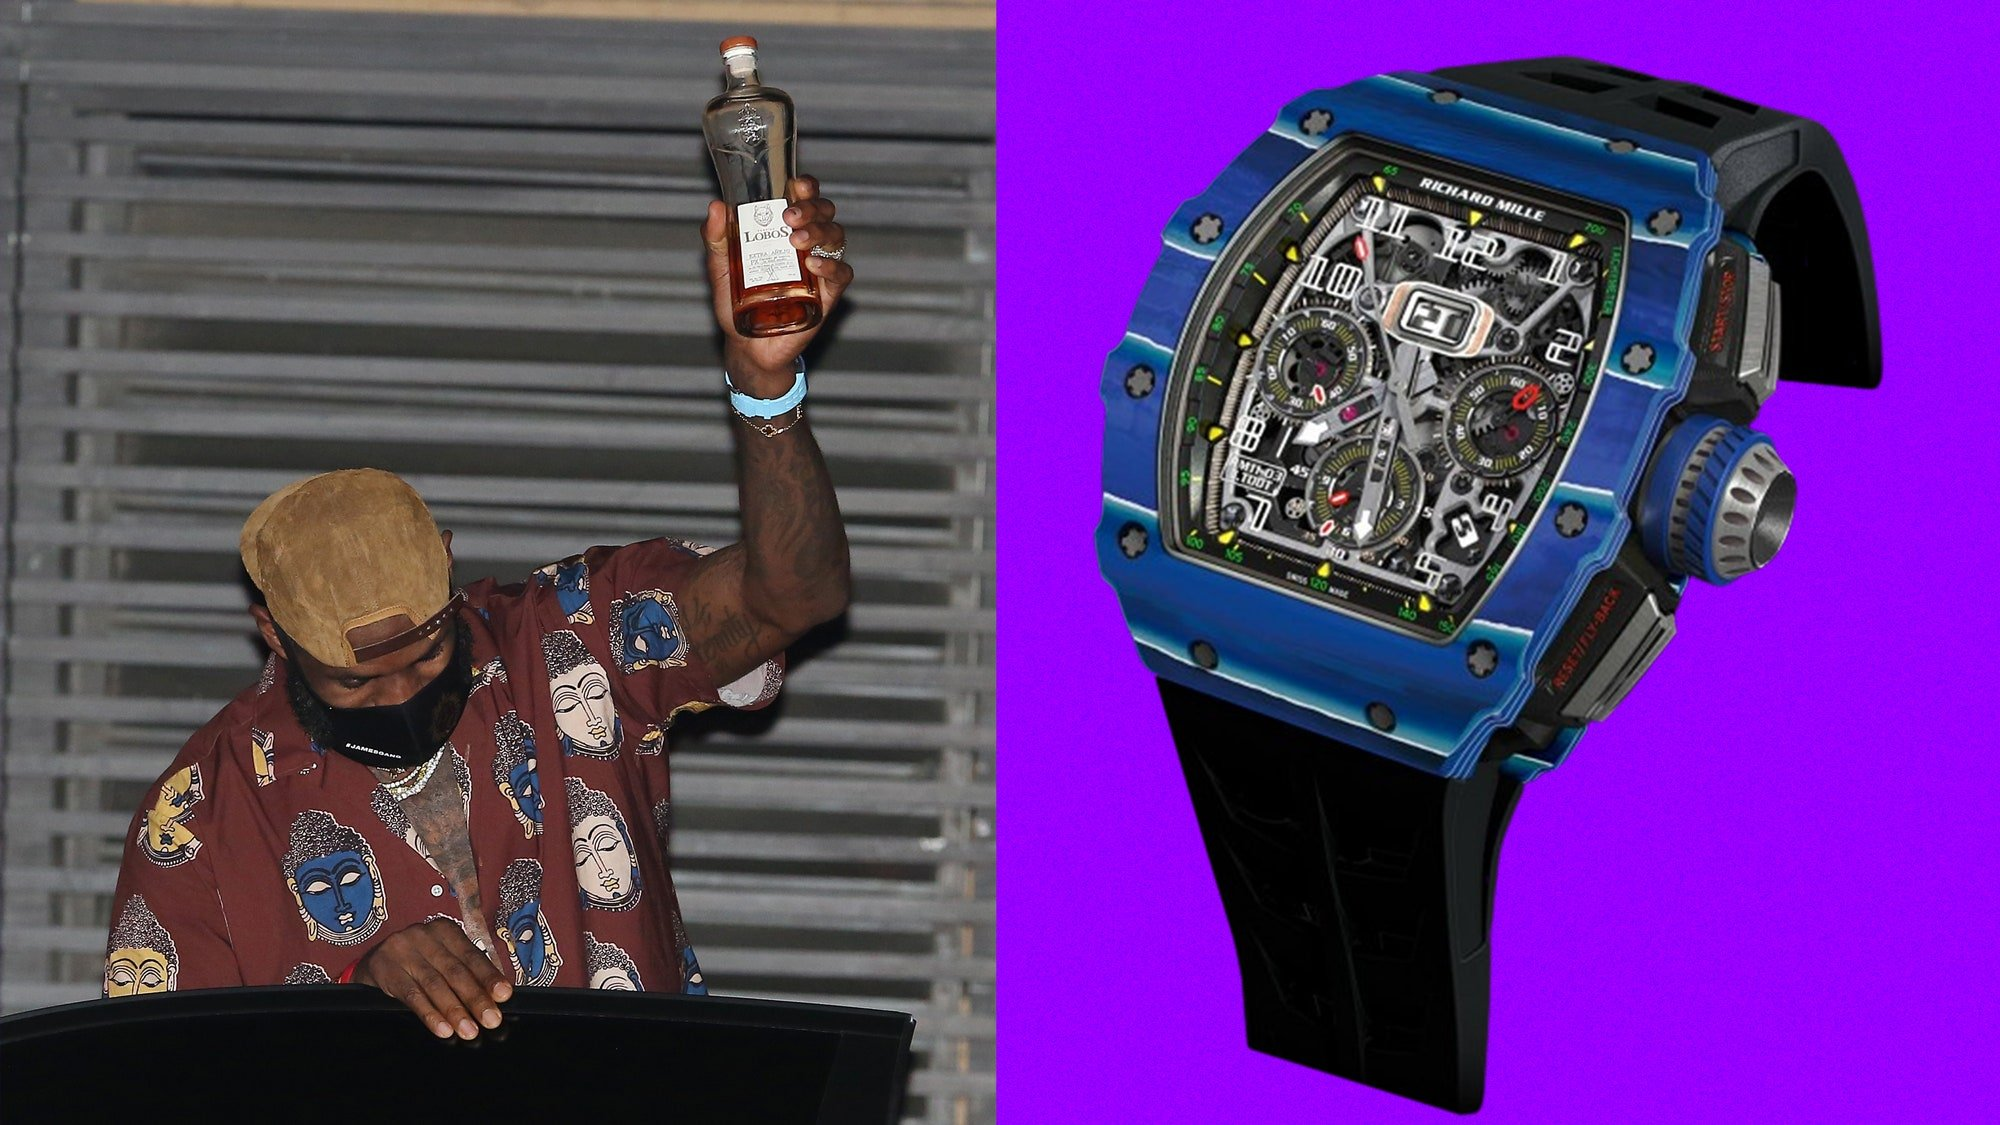 Lebron James celebrating his championship and a blue richard mille